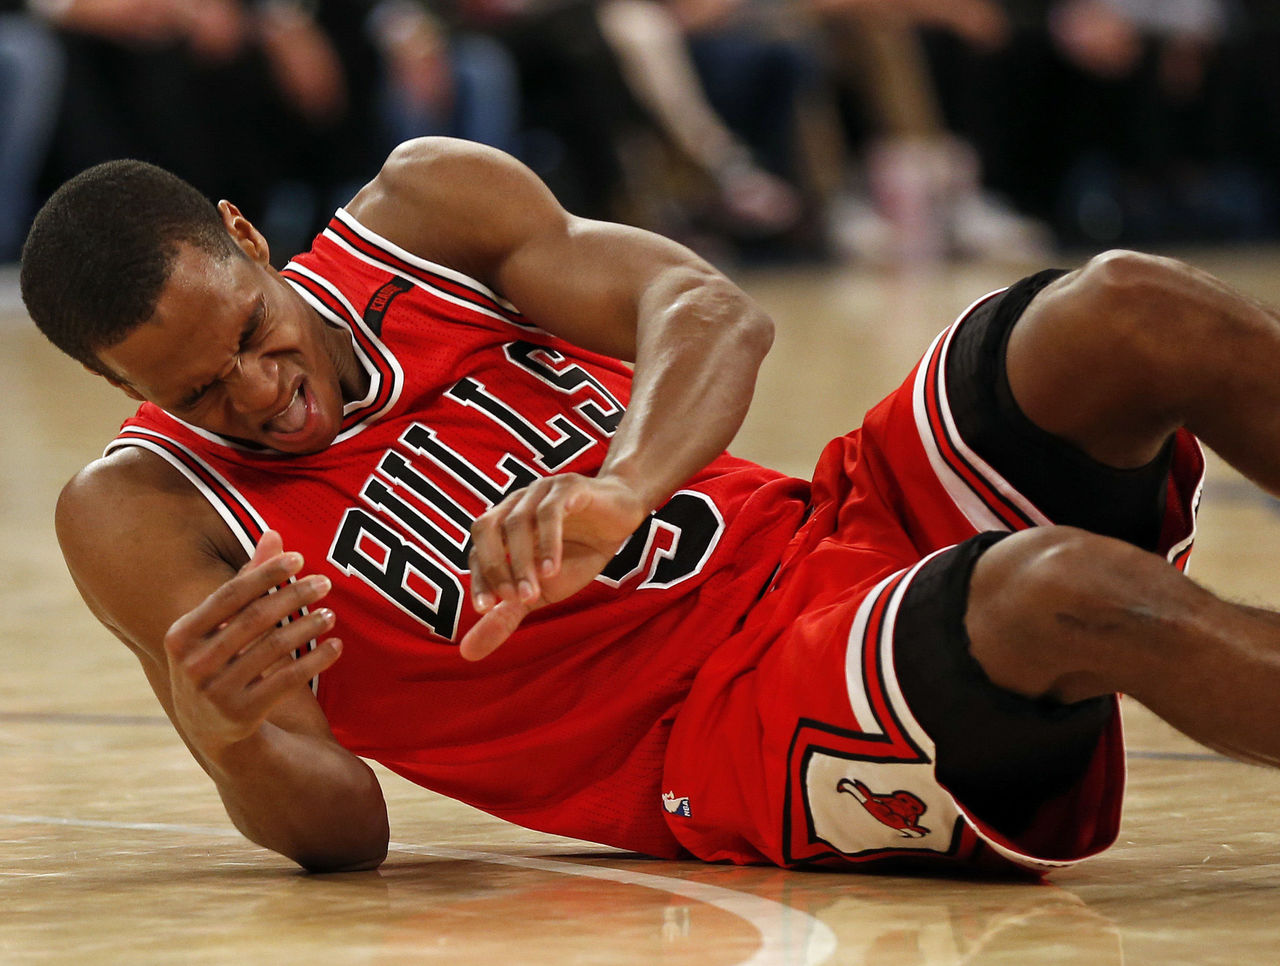 Cropped 2017 04 05t024041z 1526459299 nocid rtrmadp 3 nba chicago bulls at new york knicks